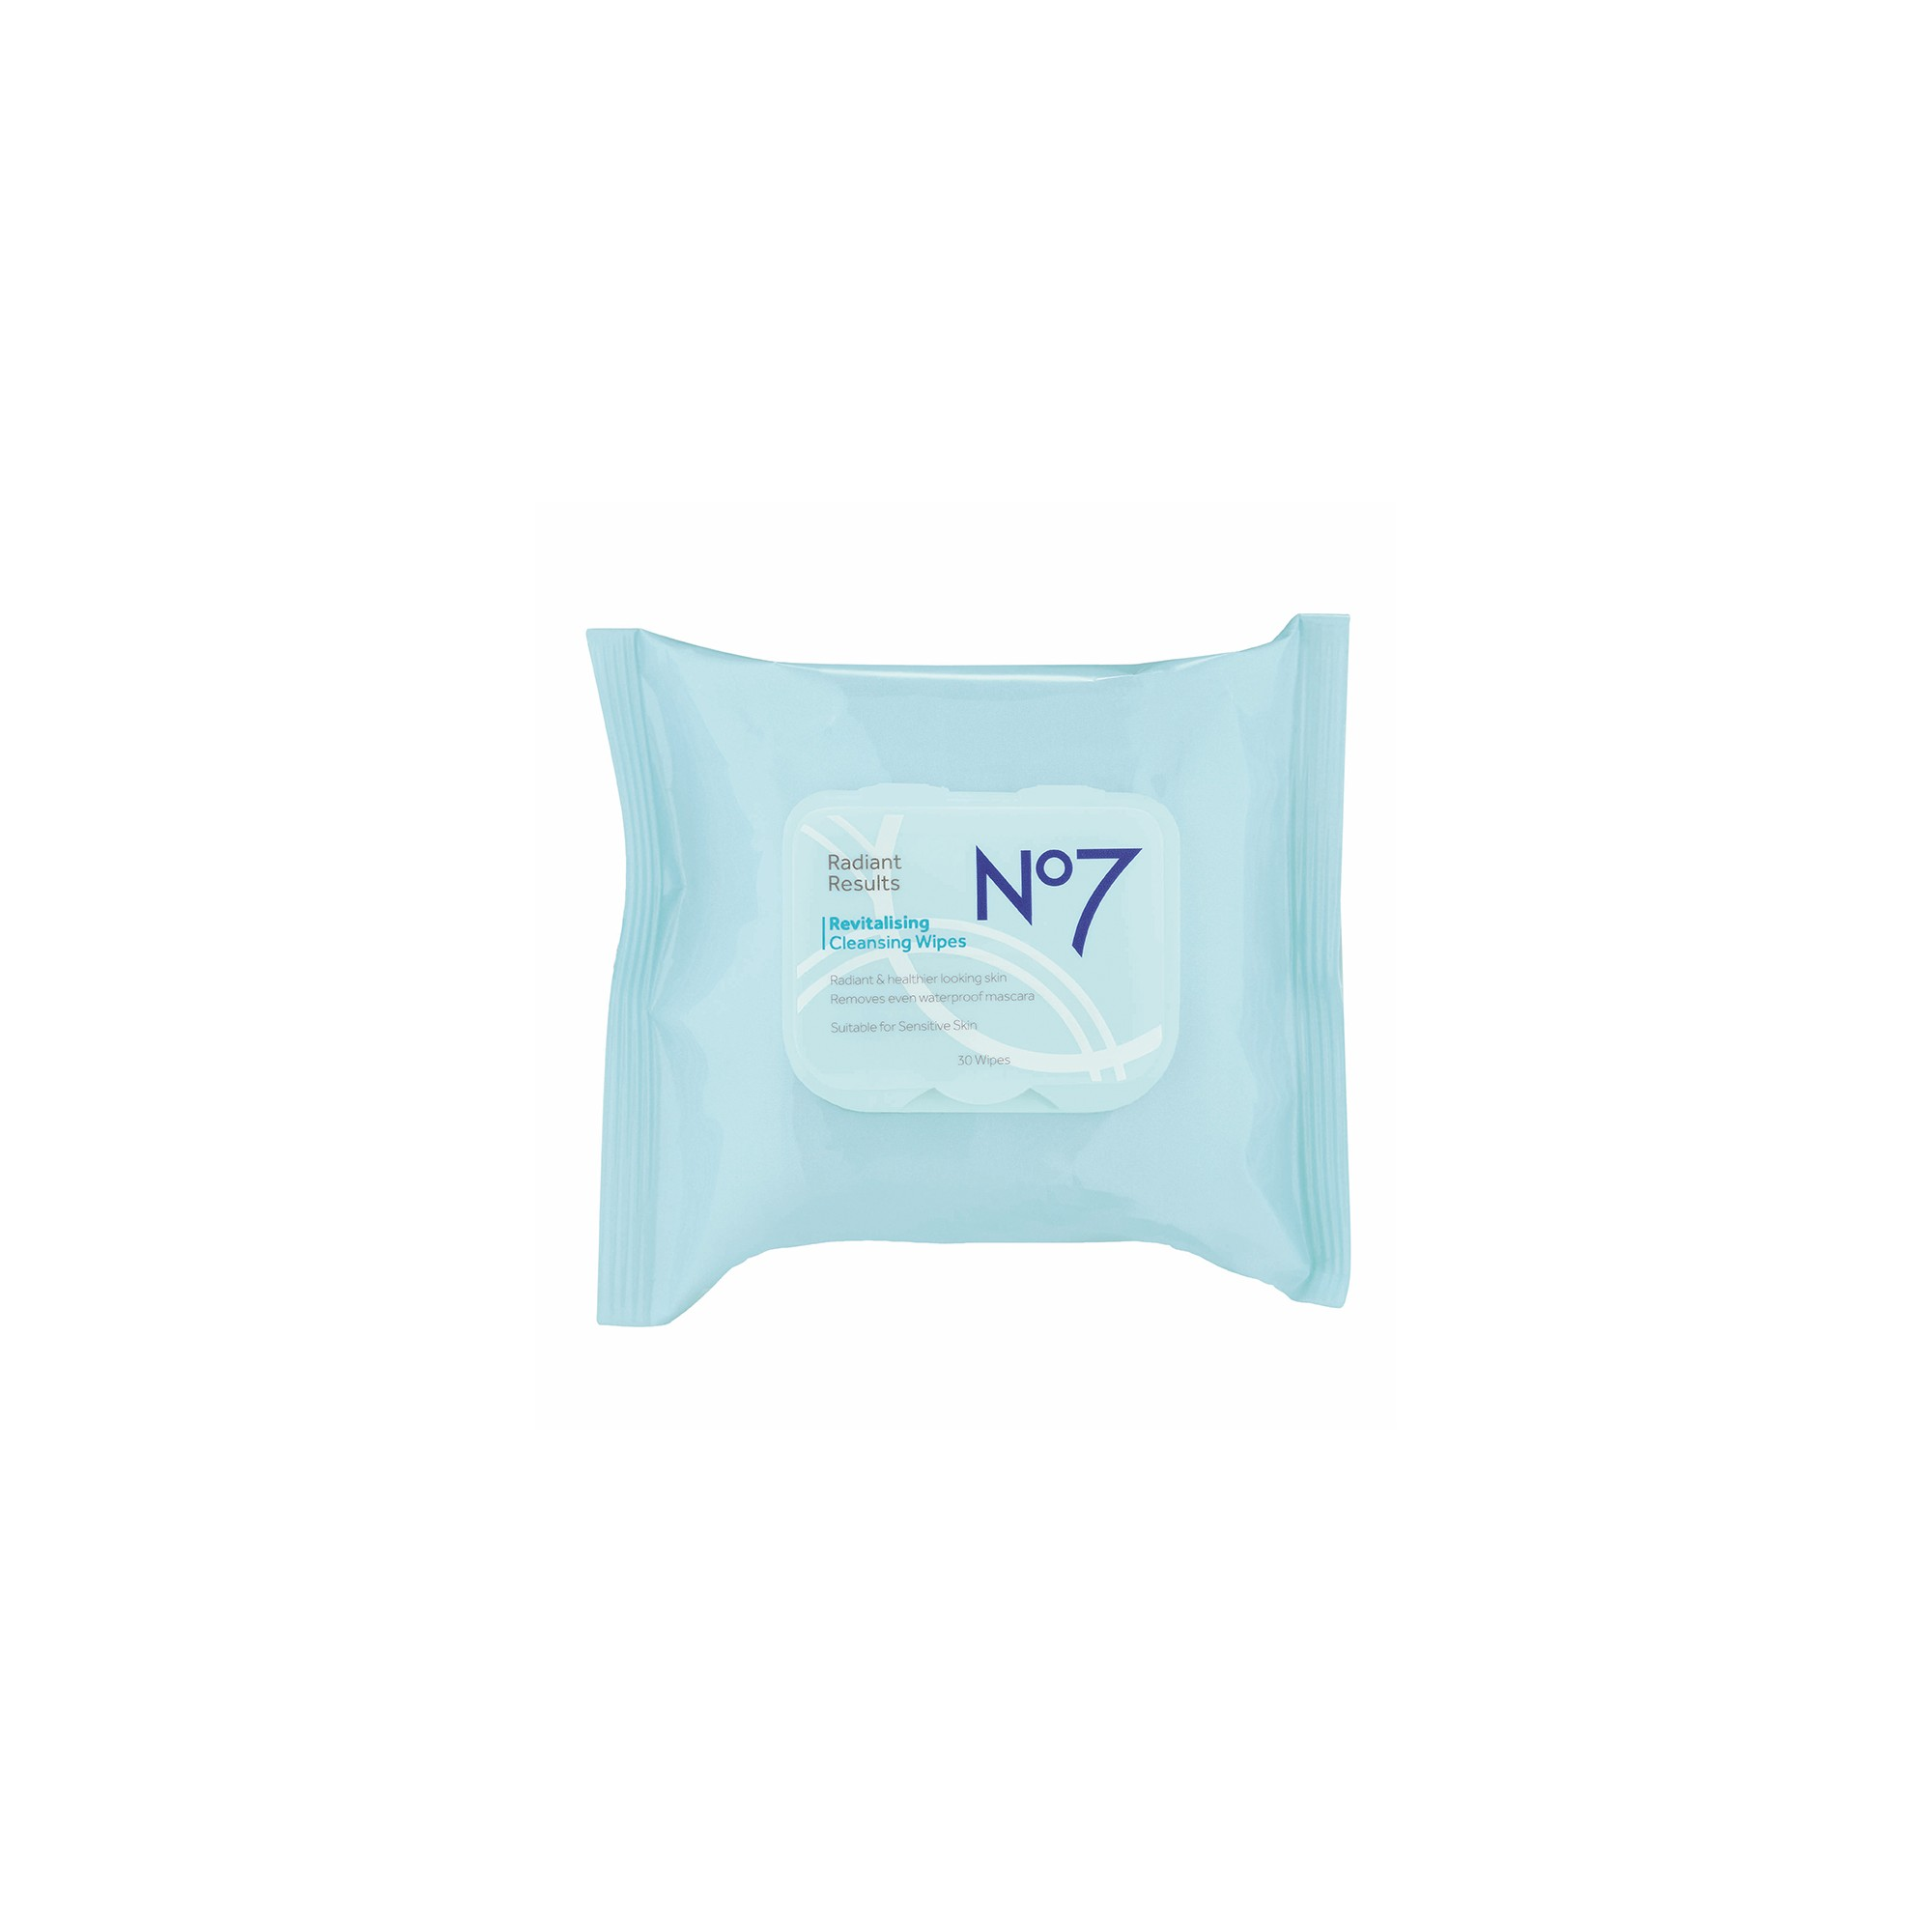 No7 Radiant Results Revitalising Cleansing Wipes - 30ct